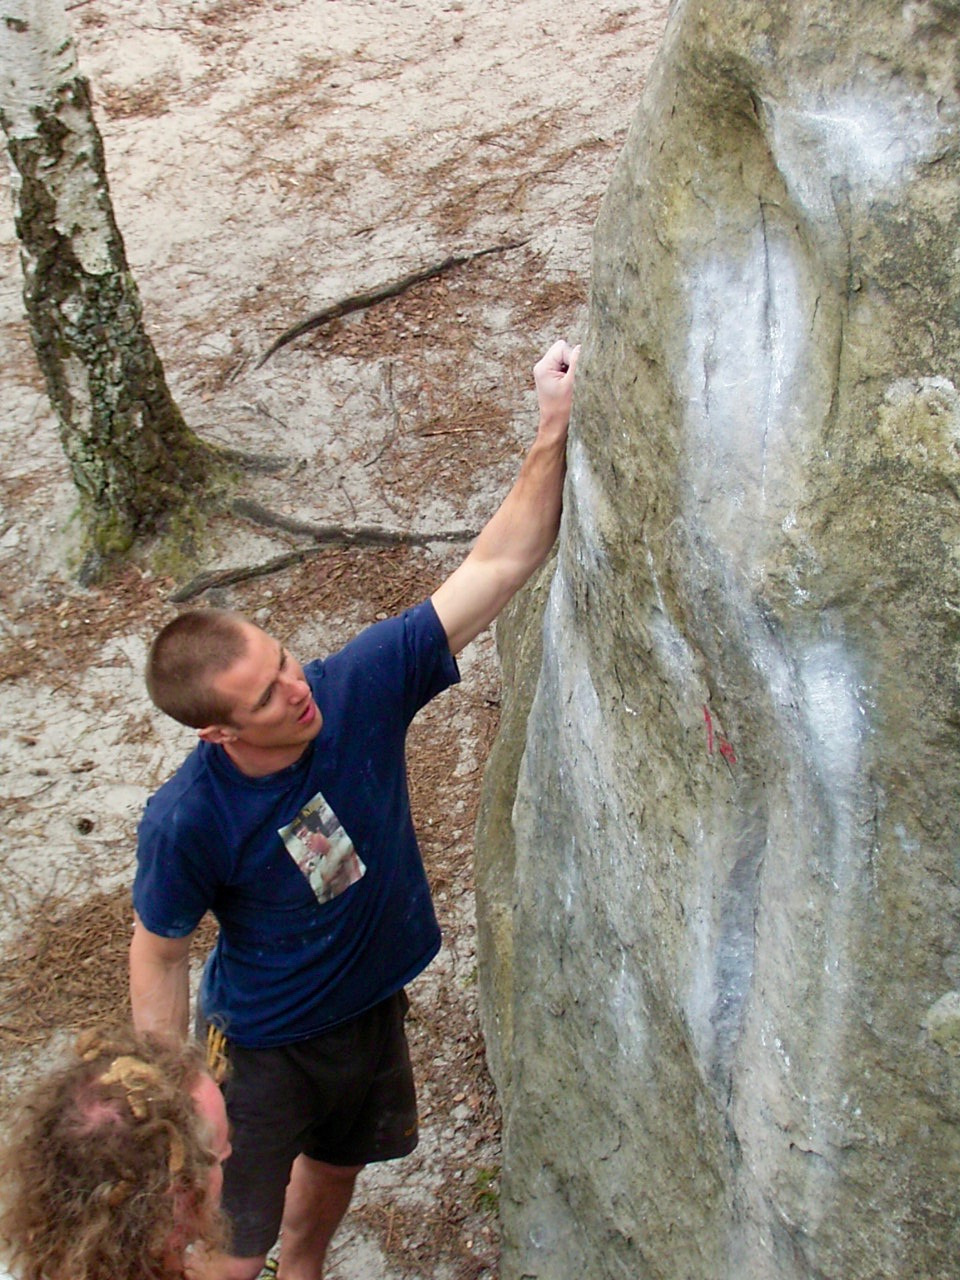 Neil developed the format for the first British-lead bouldering coaching holidays in Fontainebleau. He ran these successfully every year between 2001 and 2010.